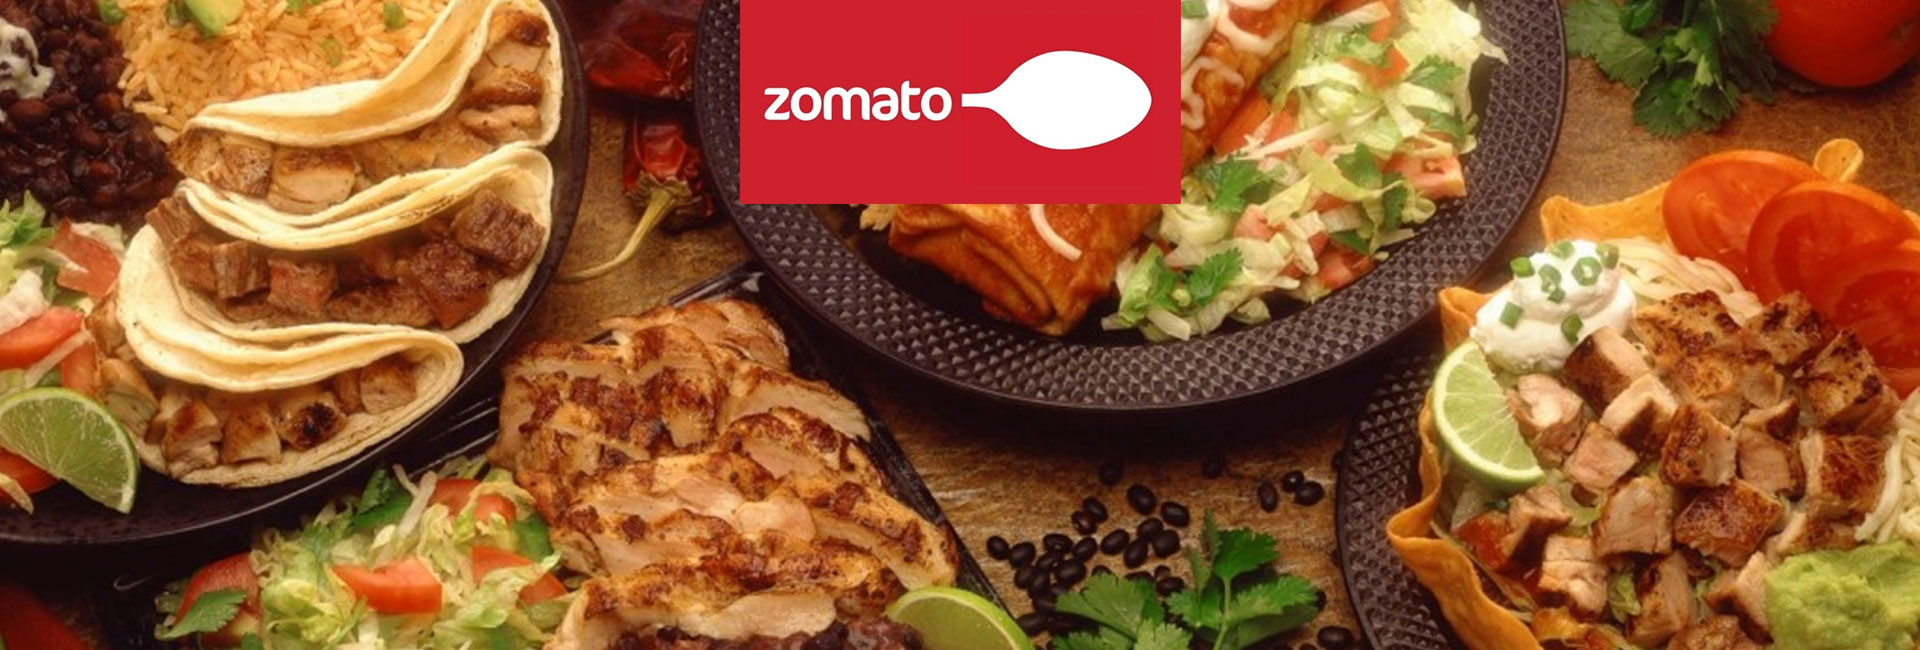 Cuisines Explained How Zomato Works Online Food Deliver App Business Model